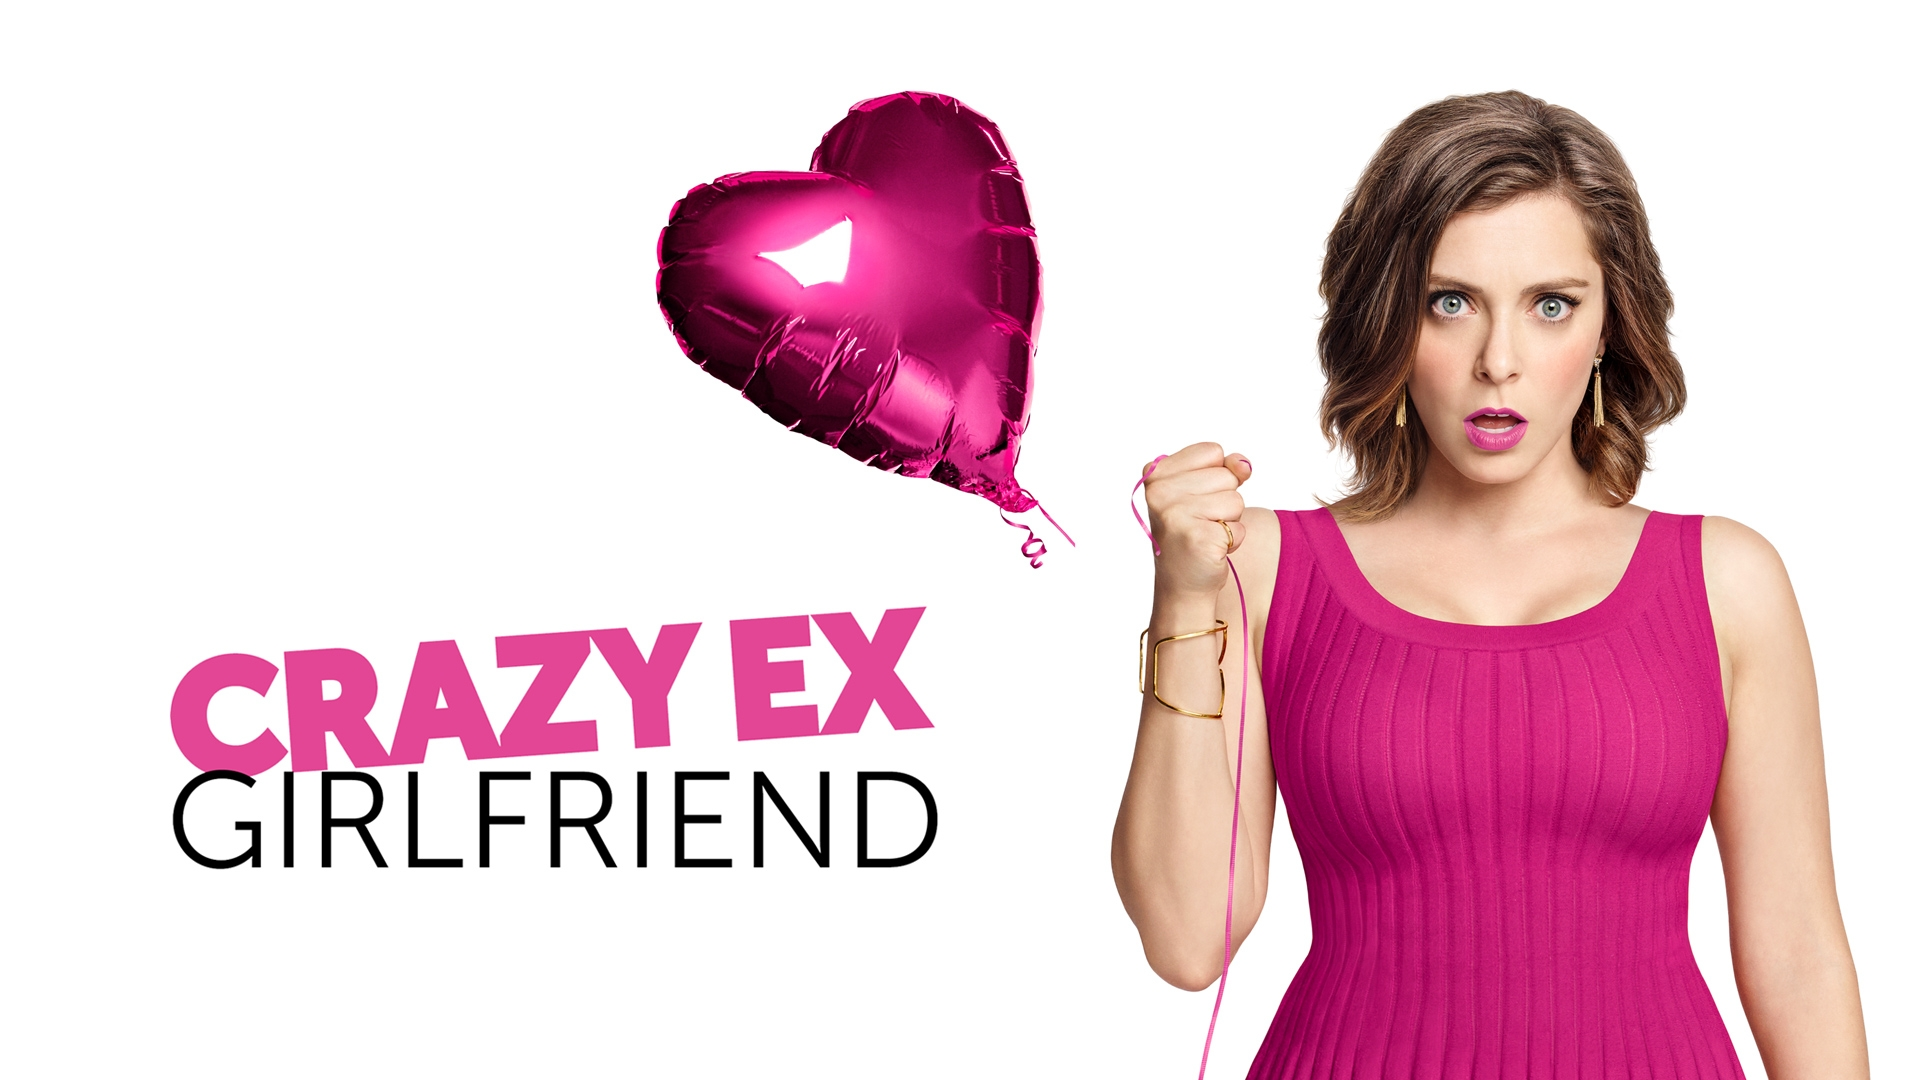 Crazy Ex Girlfriend